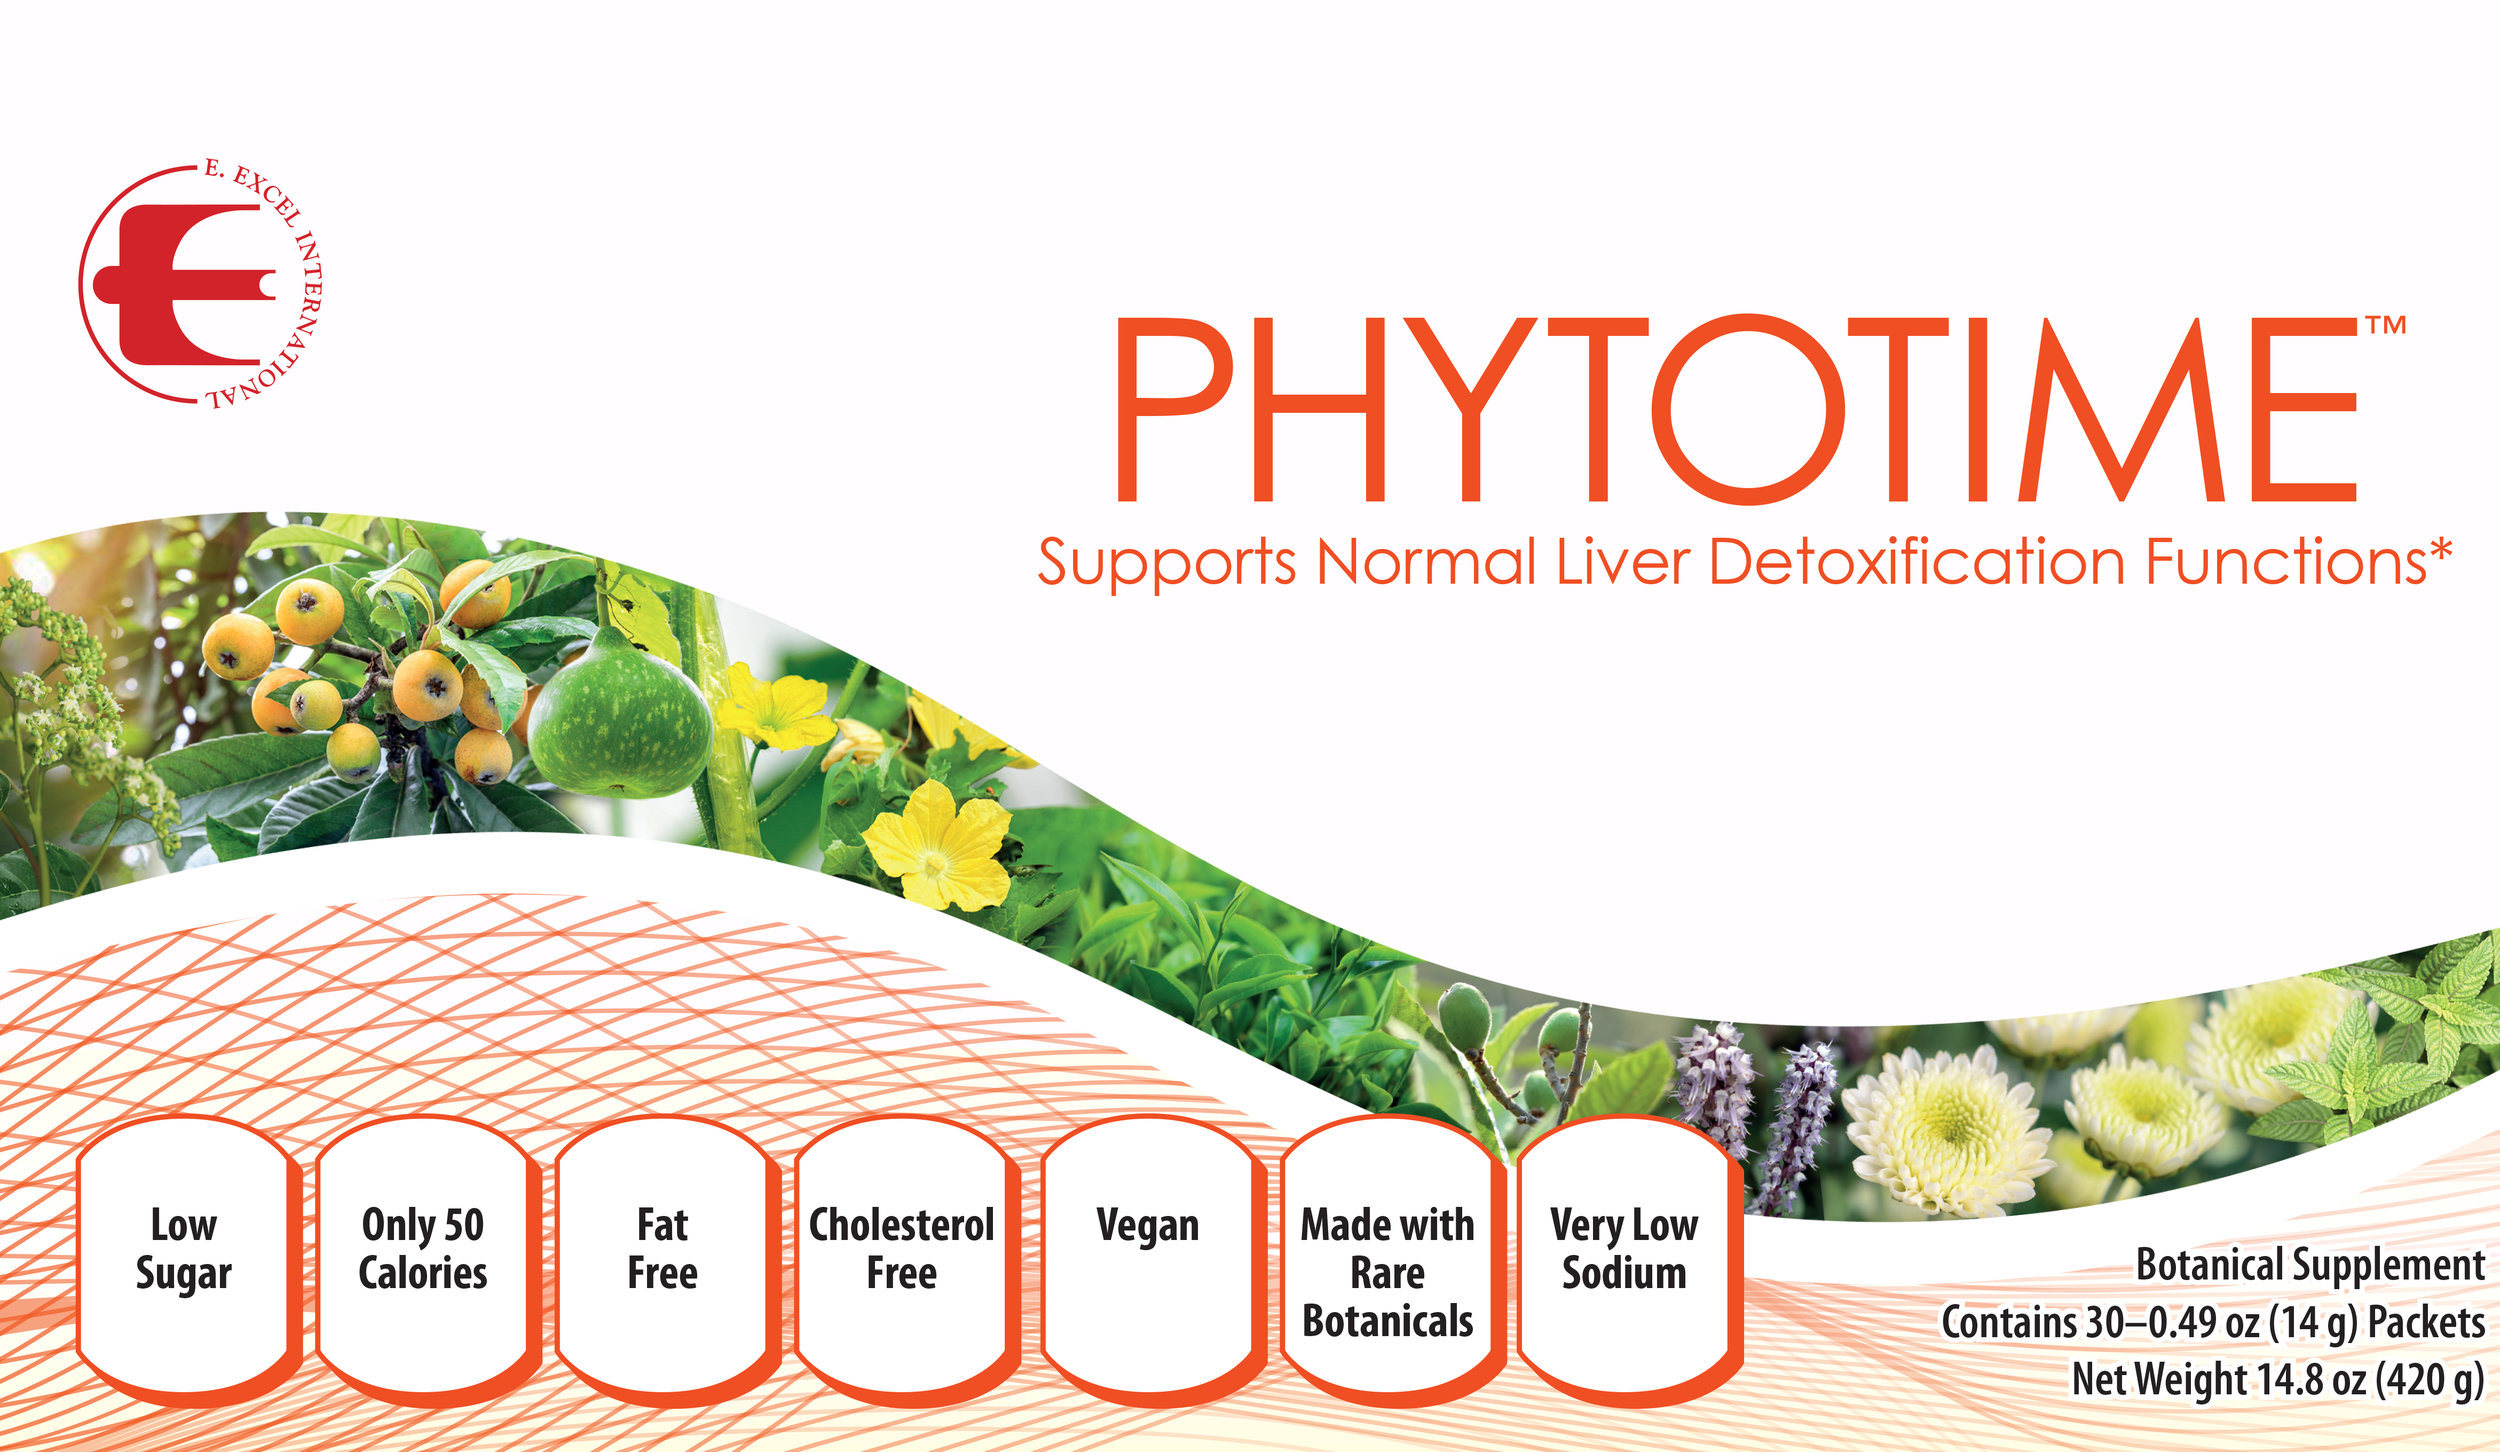 phytotime - A cooling tea which helps to support normal liver detoxification functions, the body's normal cleansing functions and normal anti-inflammatory functions.*Featured Ingredients: Chinese Mesona, Oriental Raisin Tree Fruit, Green Tea, Loquat Leaf, Chrysanthemum, Winter Melon